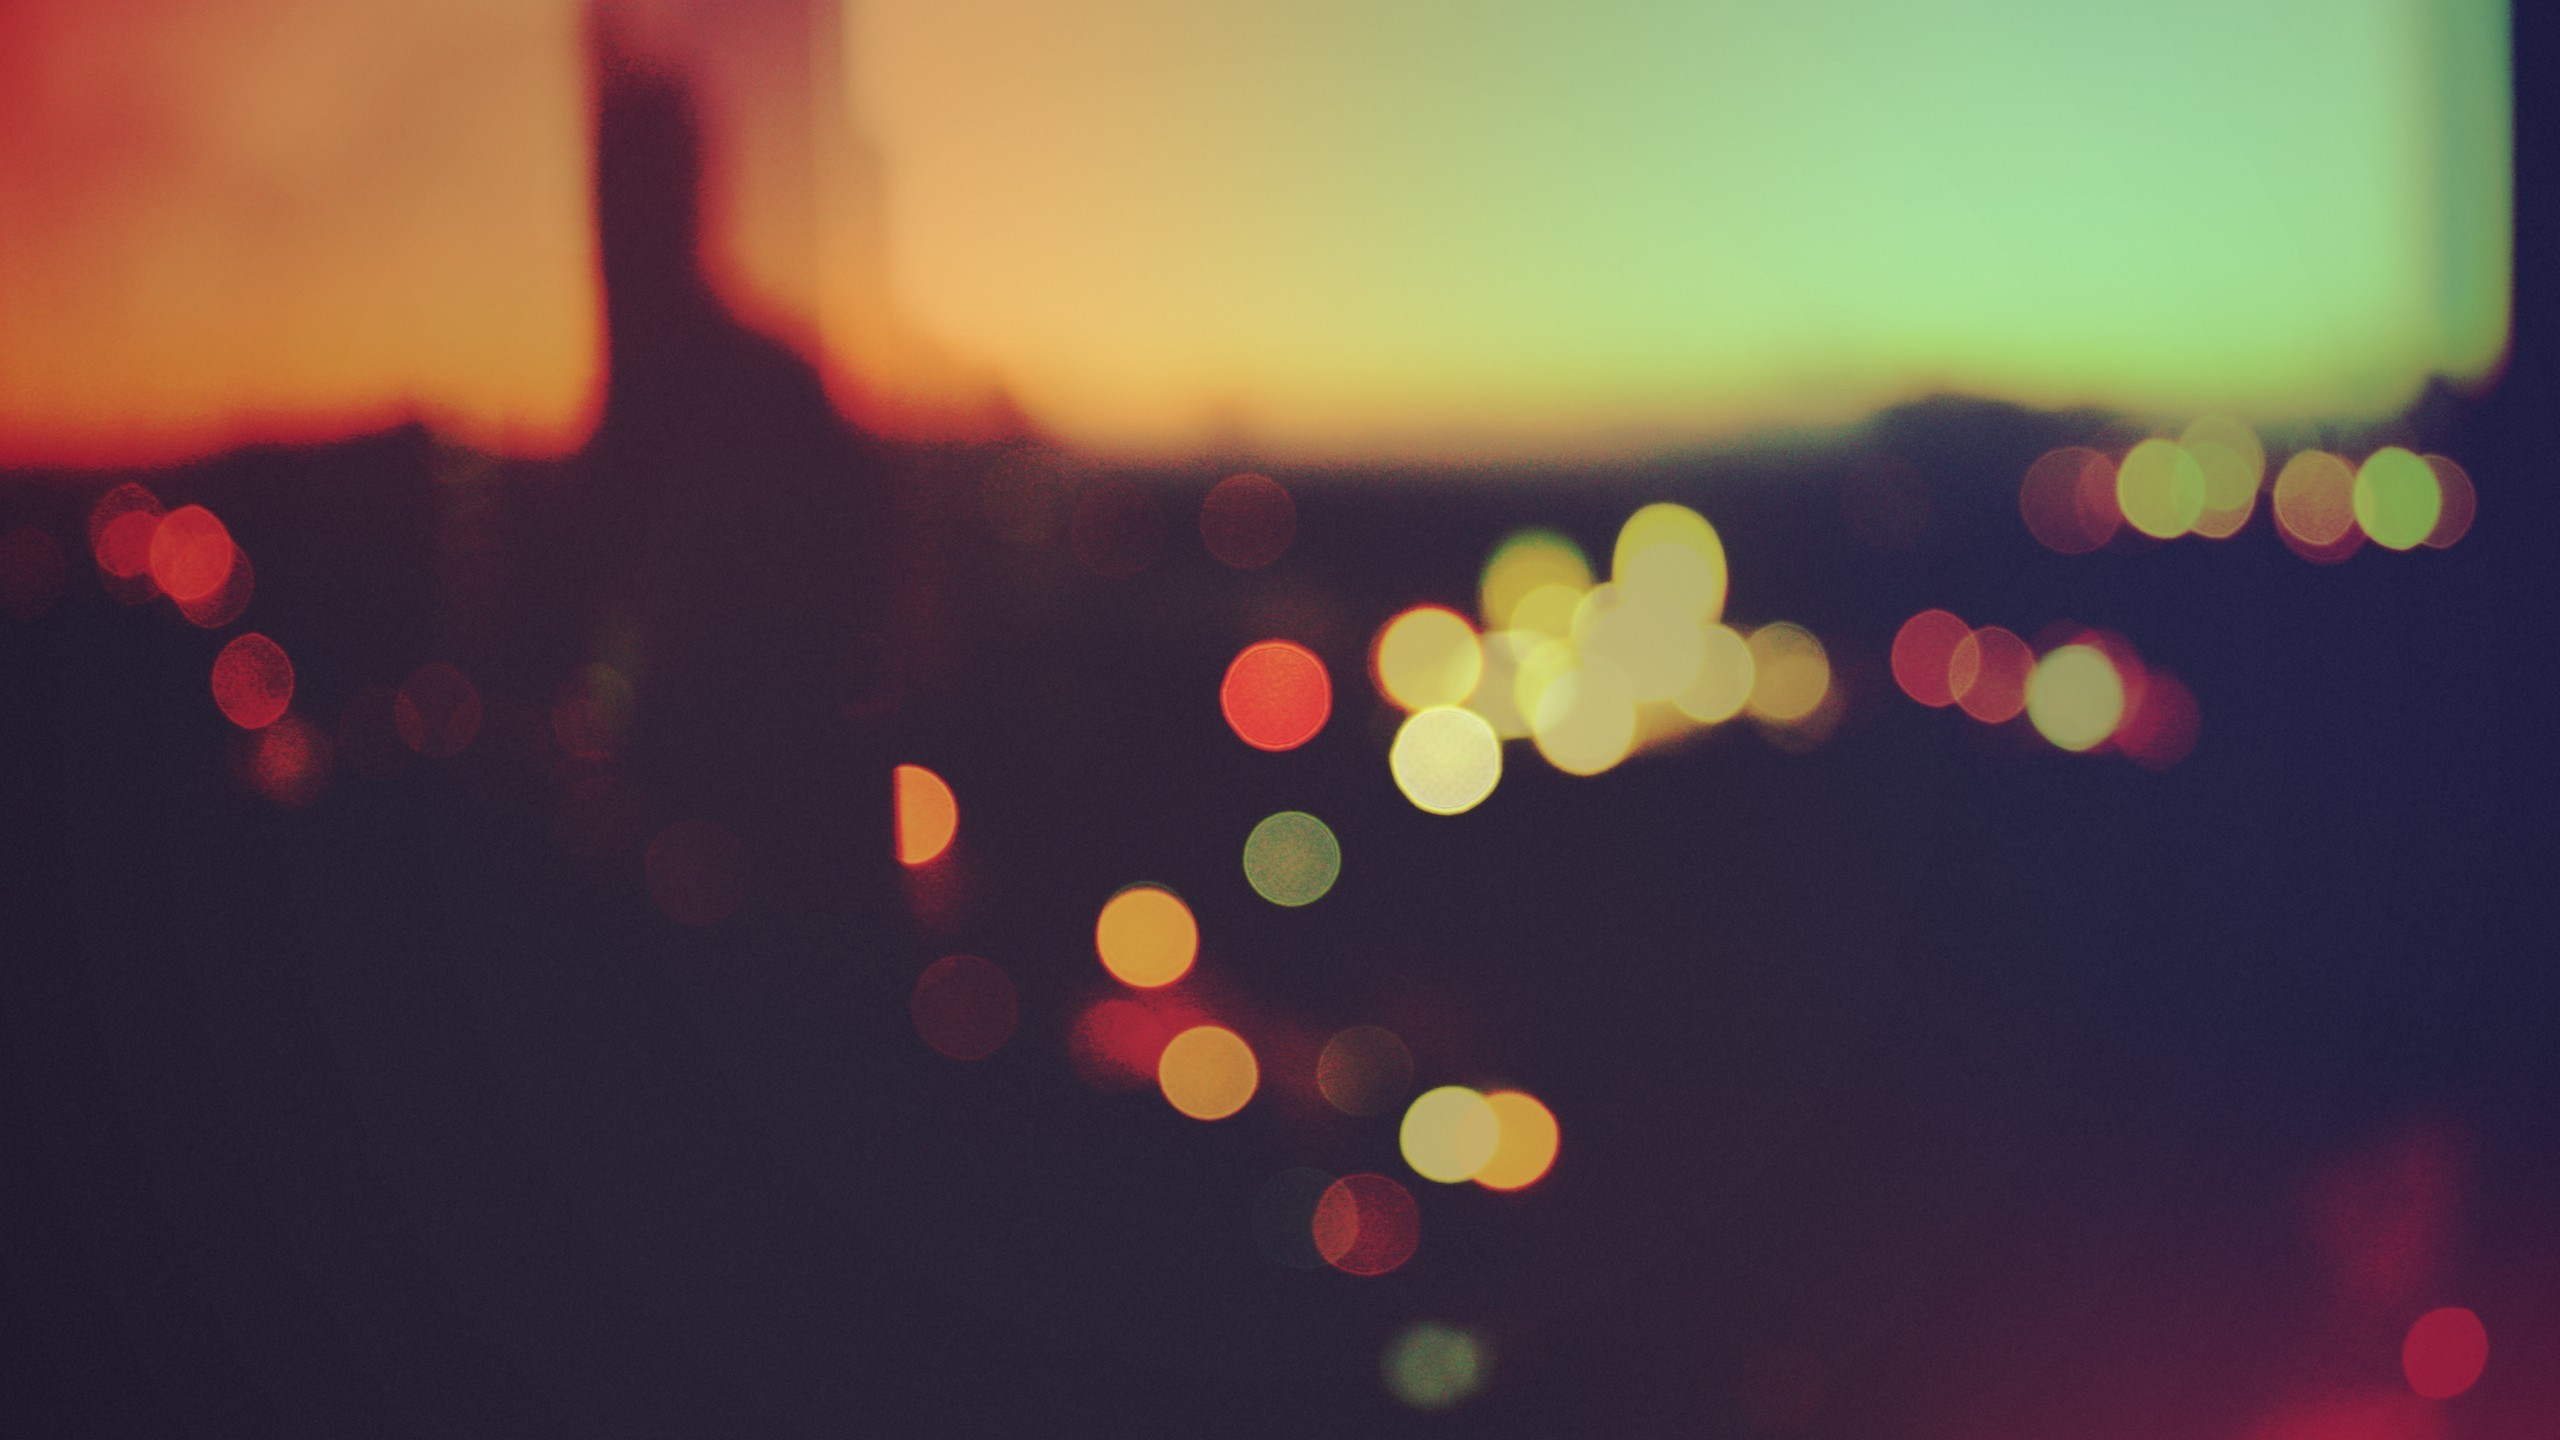 Wallpaper For Youtube Channel Art 96 Images